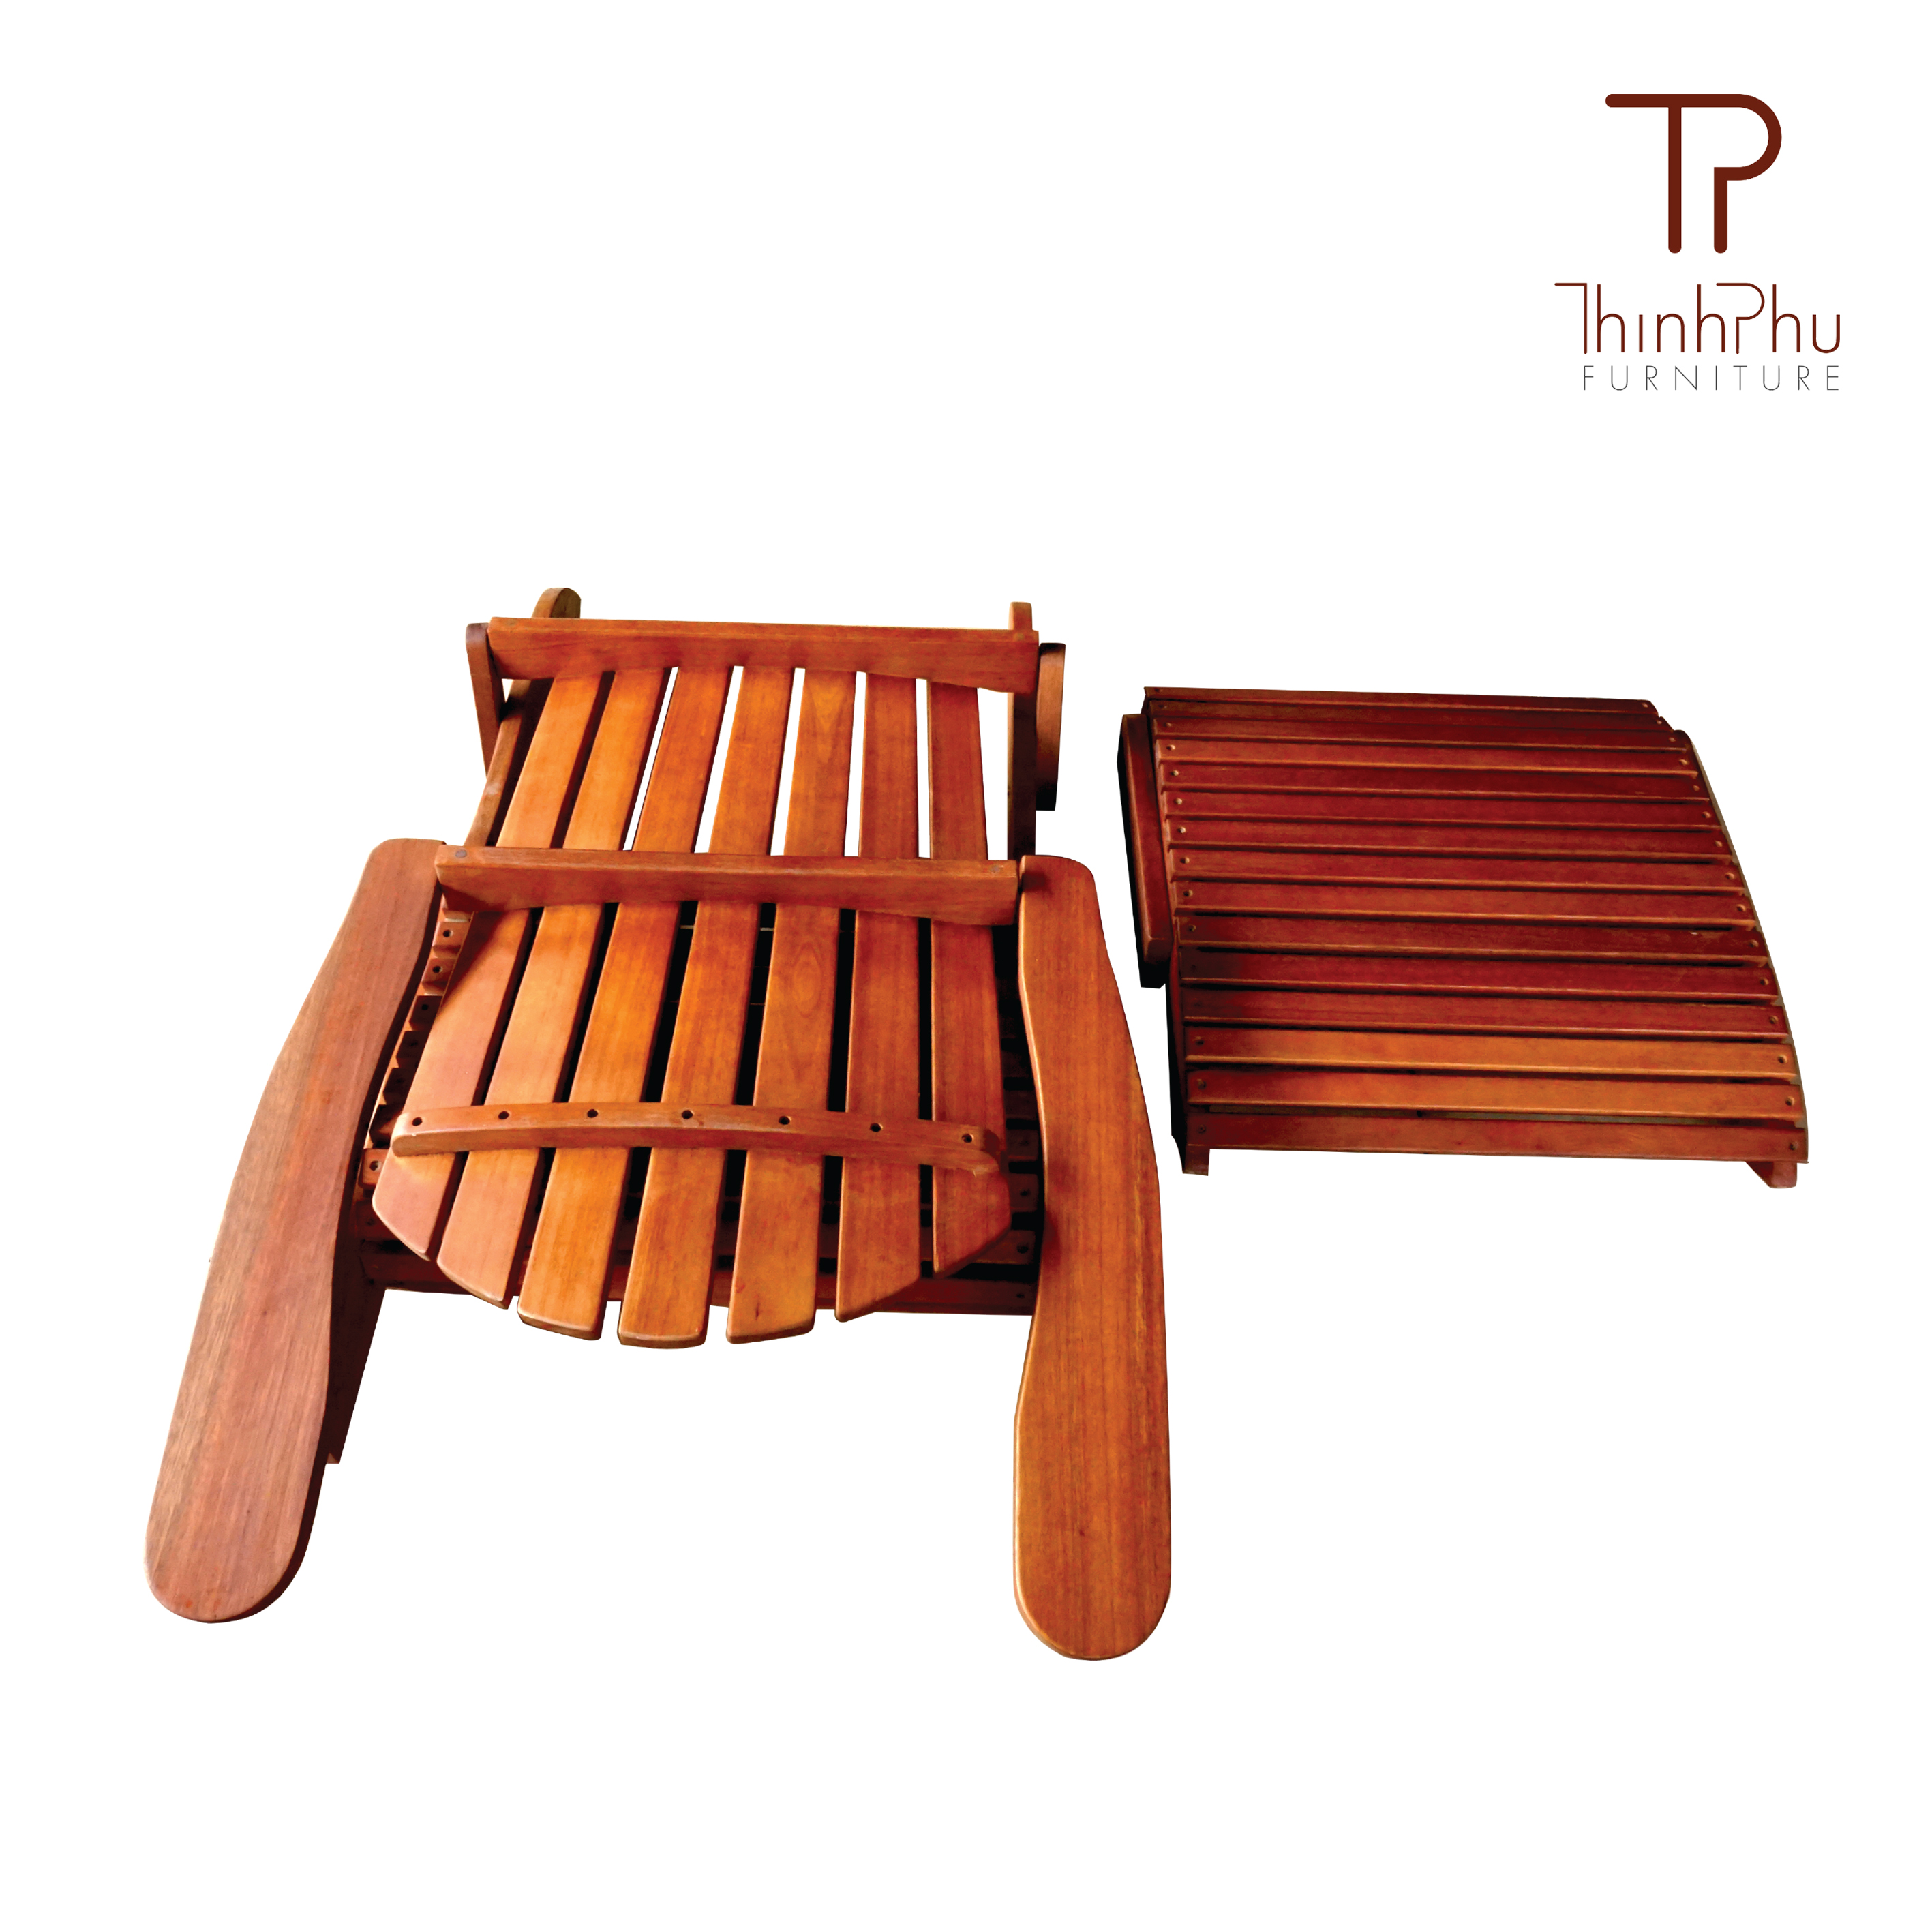 Adirondack chair with footrest luxius thinh phu furniture for Vietnam furniture